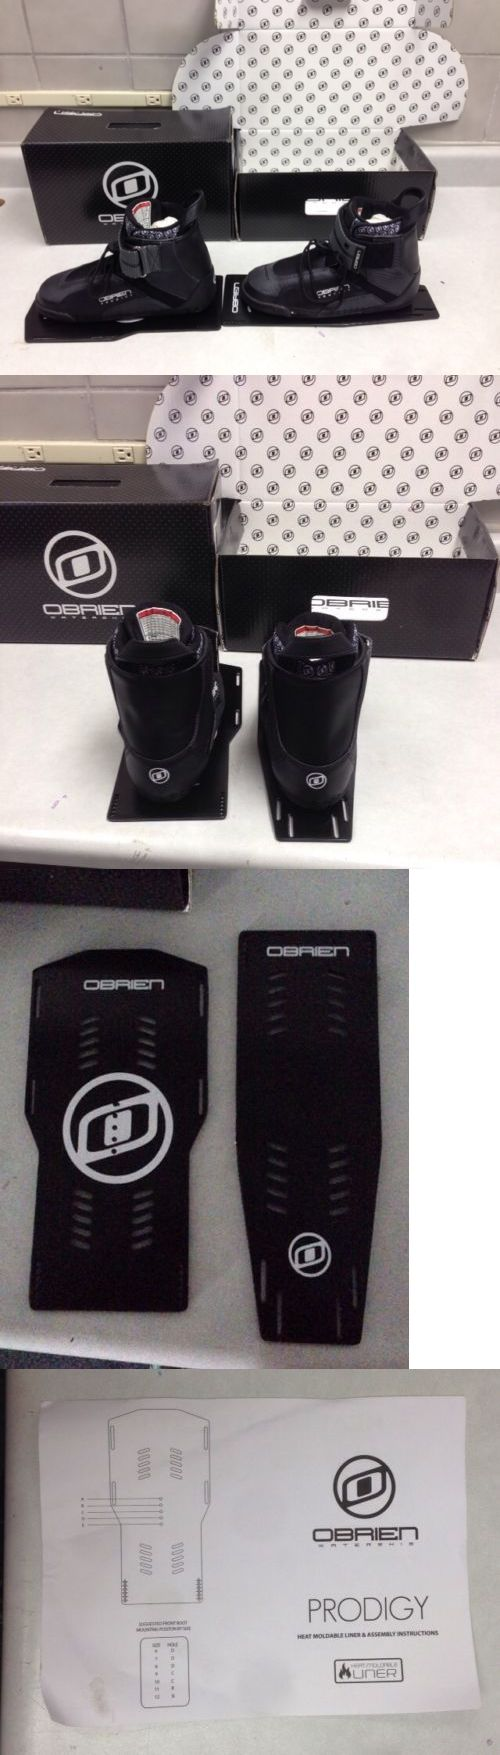 Waterskis 71175: O Brien Prodigy Boot Left And Right Size 9 Water Ski Bindings(Sizing Runs Small) -> BUY IT NOW ONLY: $65 on eBay!